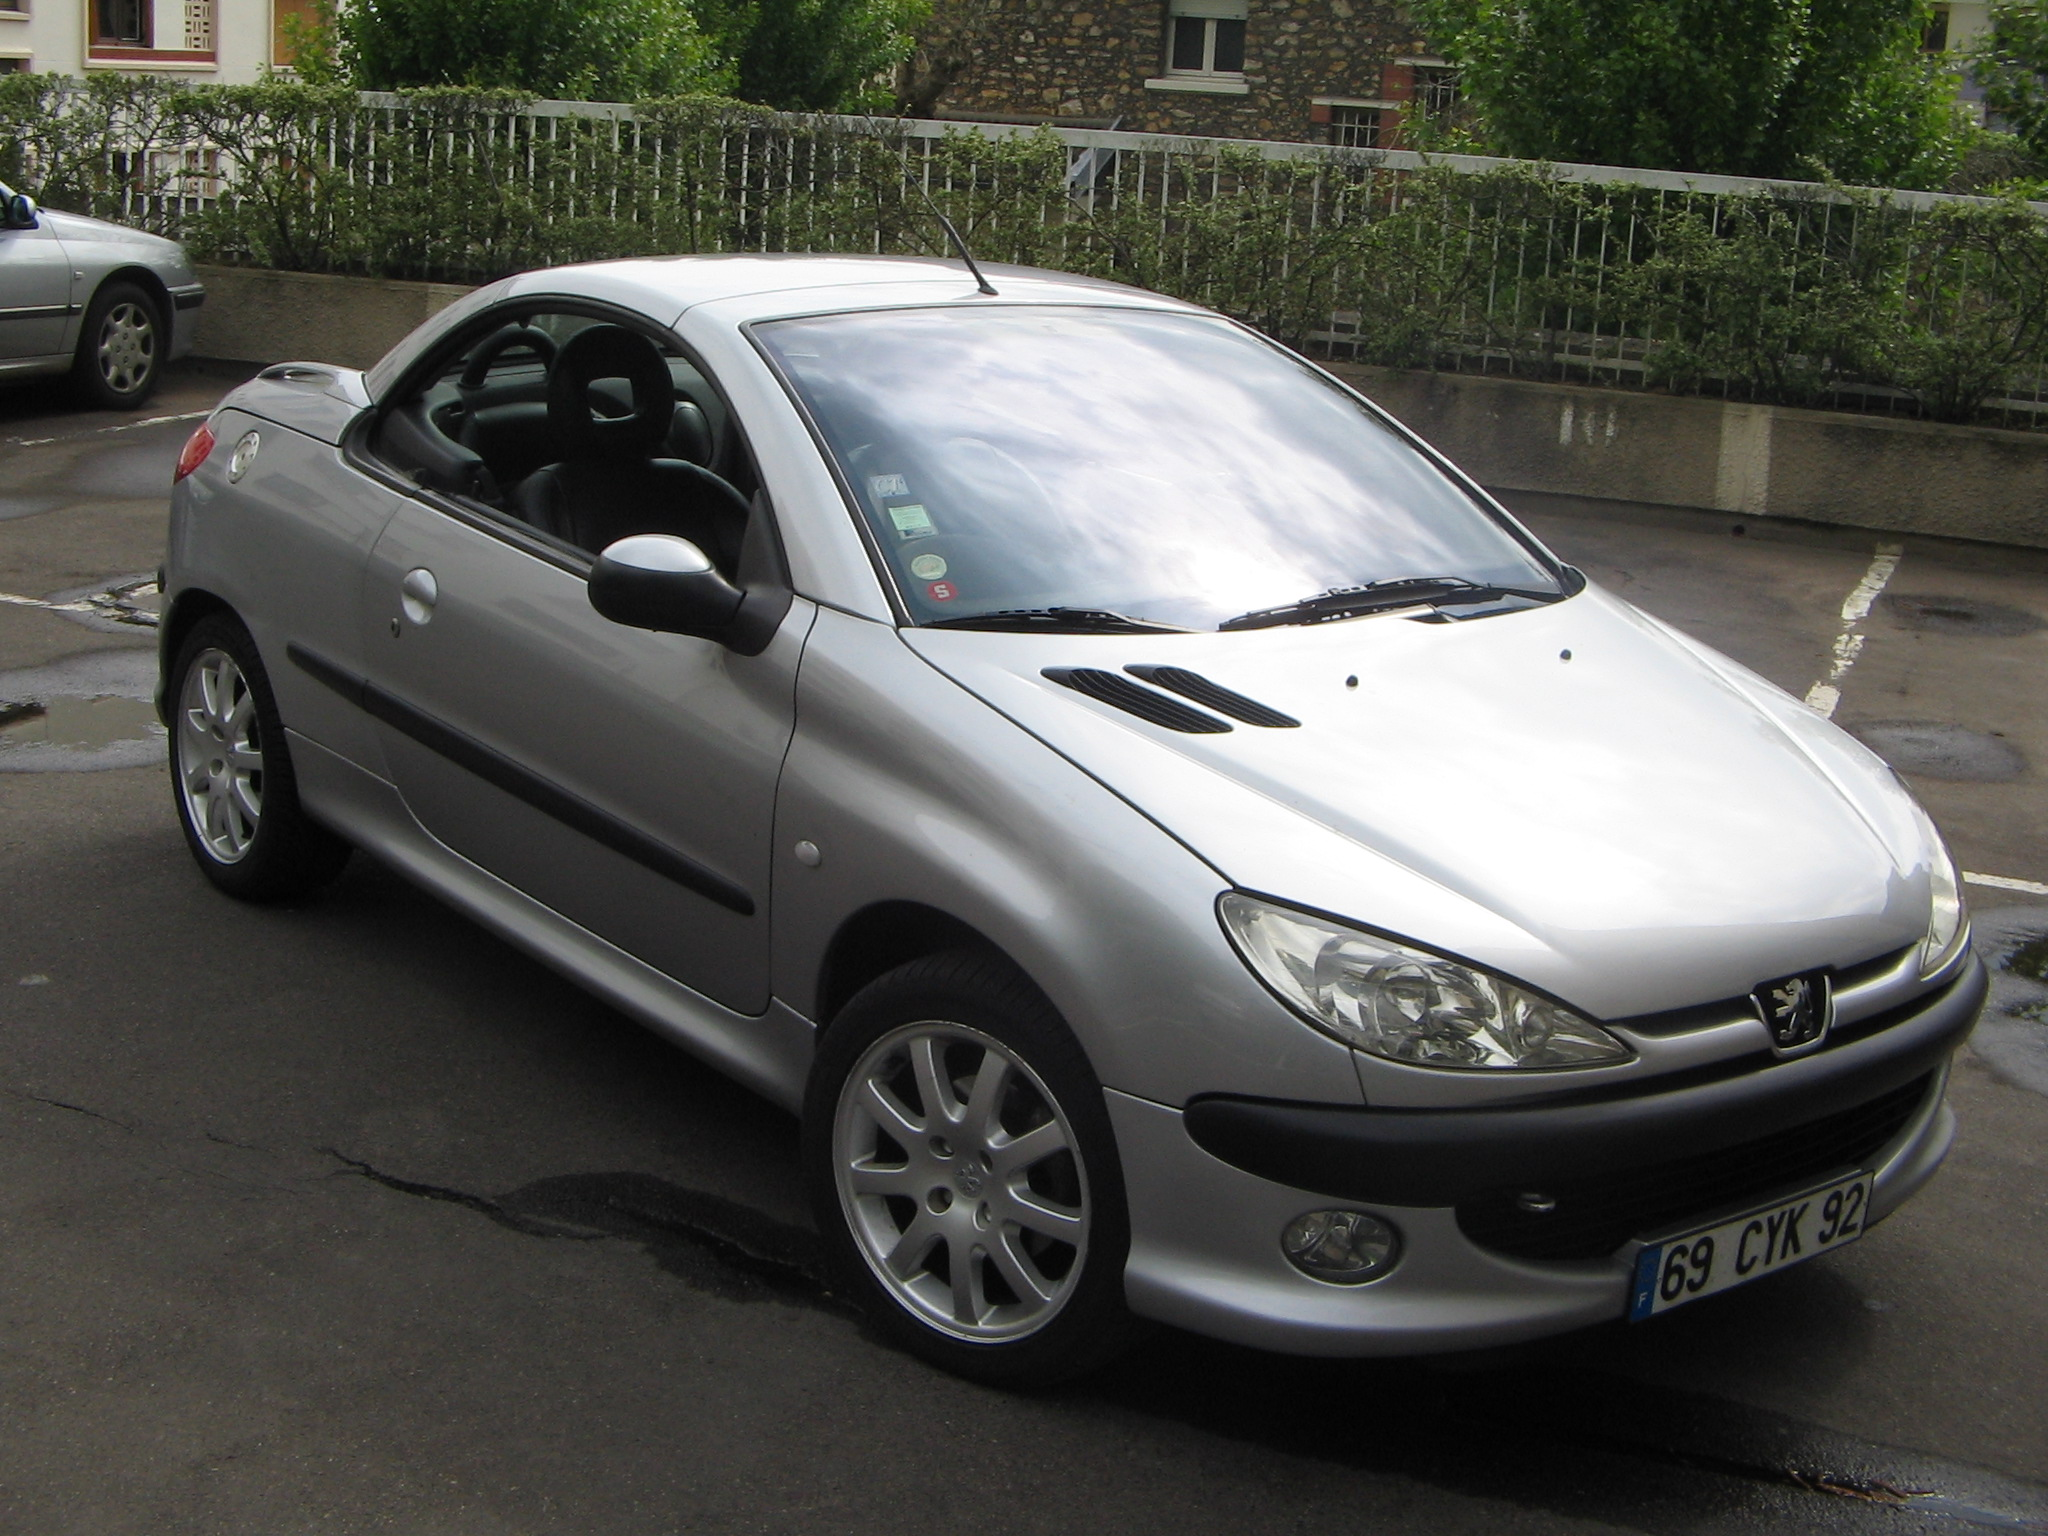 voiture occasion peugeot 206 cc de 2001 97 000 km. Black Bedroom Furniture Sets. Home Design Ideas